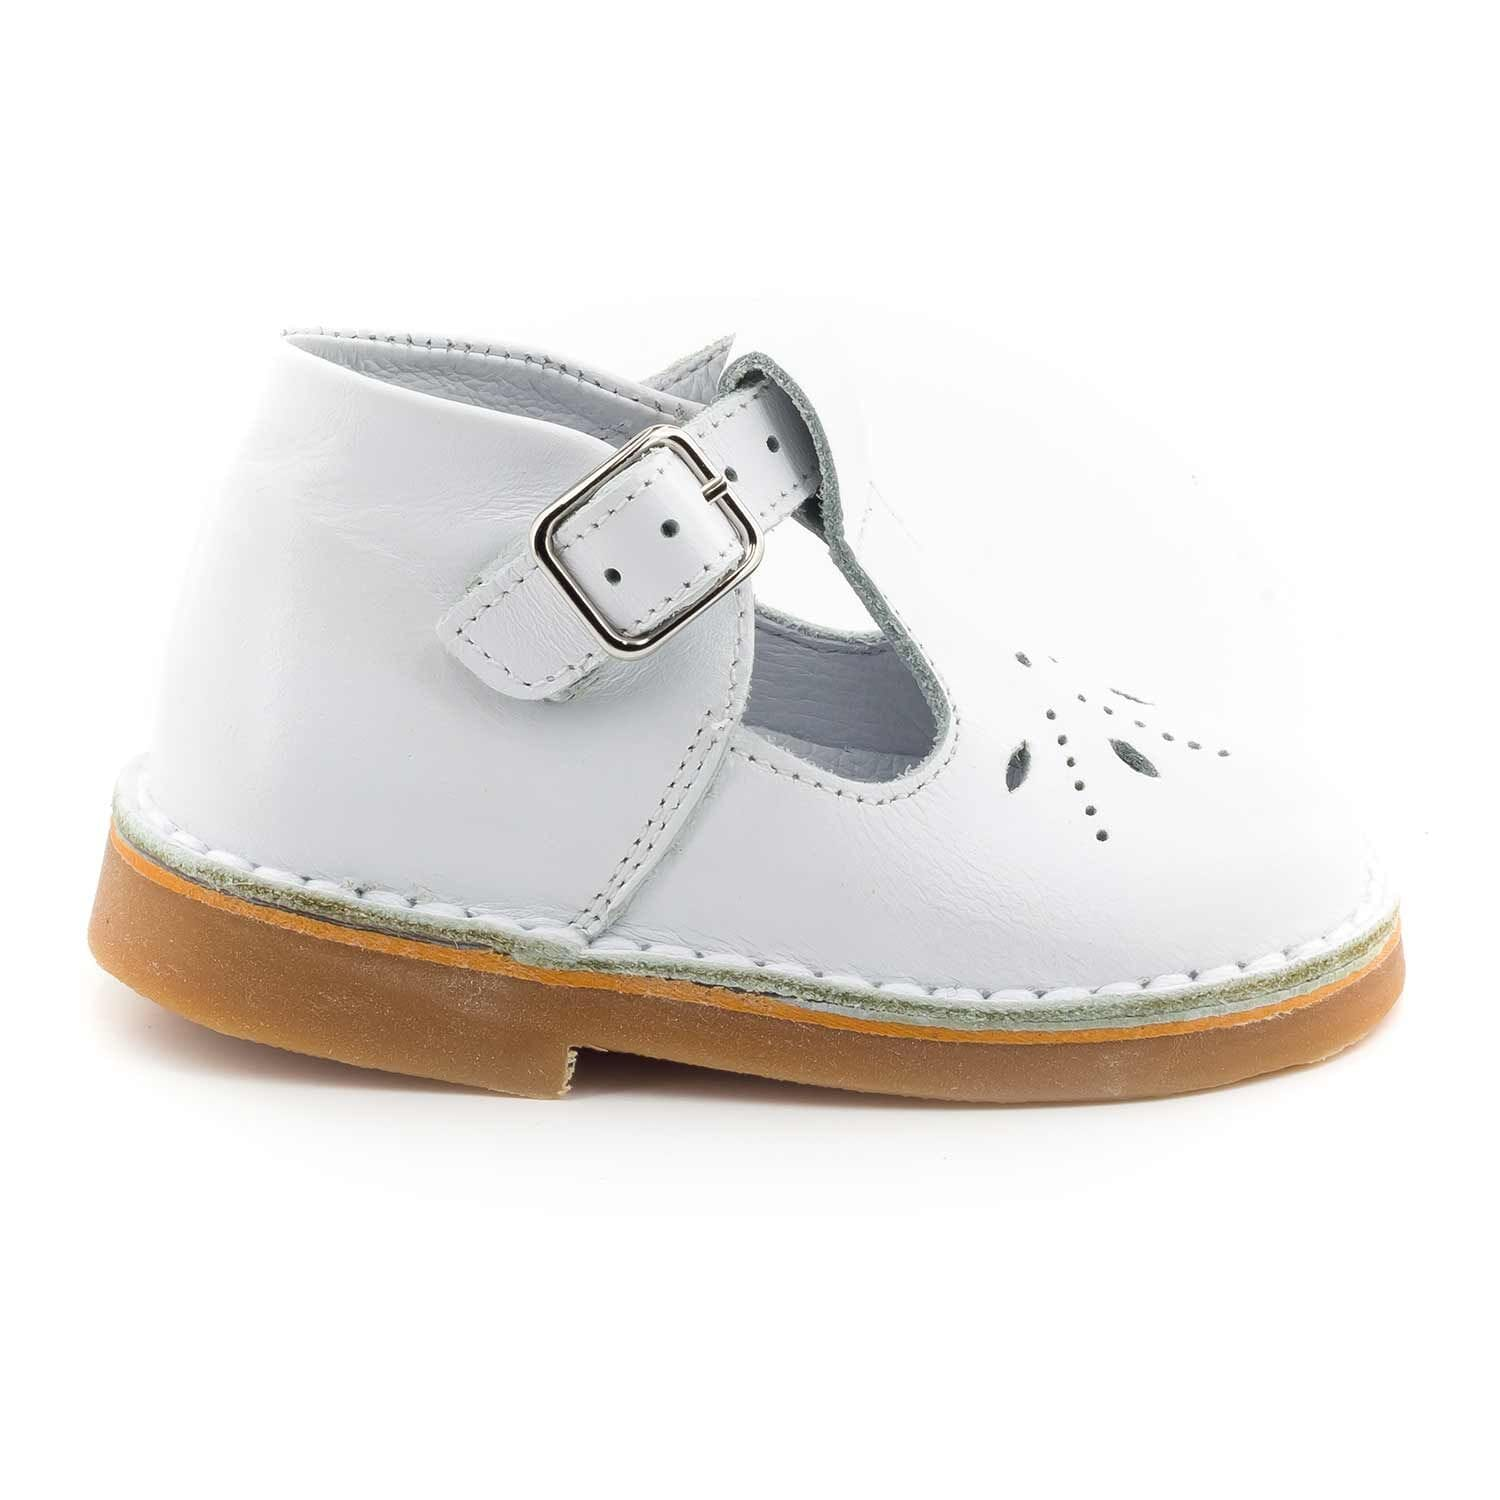 Chaussures Henry amp  Sandales Henry amp  Sandales Chaussures Henry  Chaussures Sandales 7CUwqZ74 bb03c778326